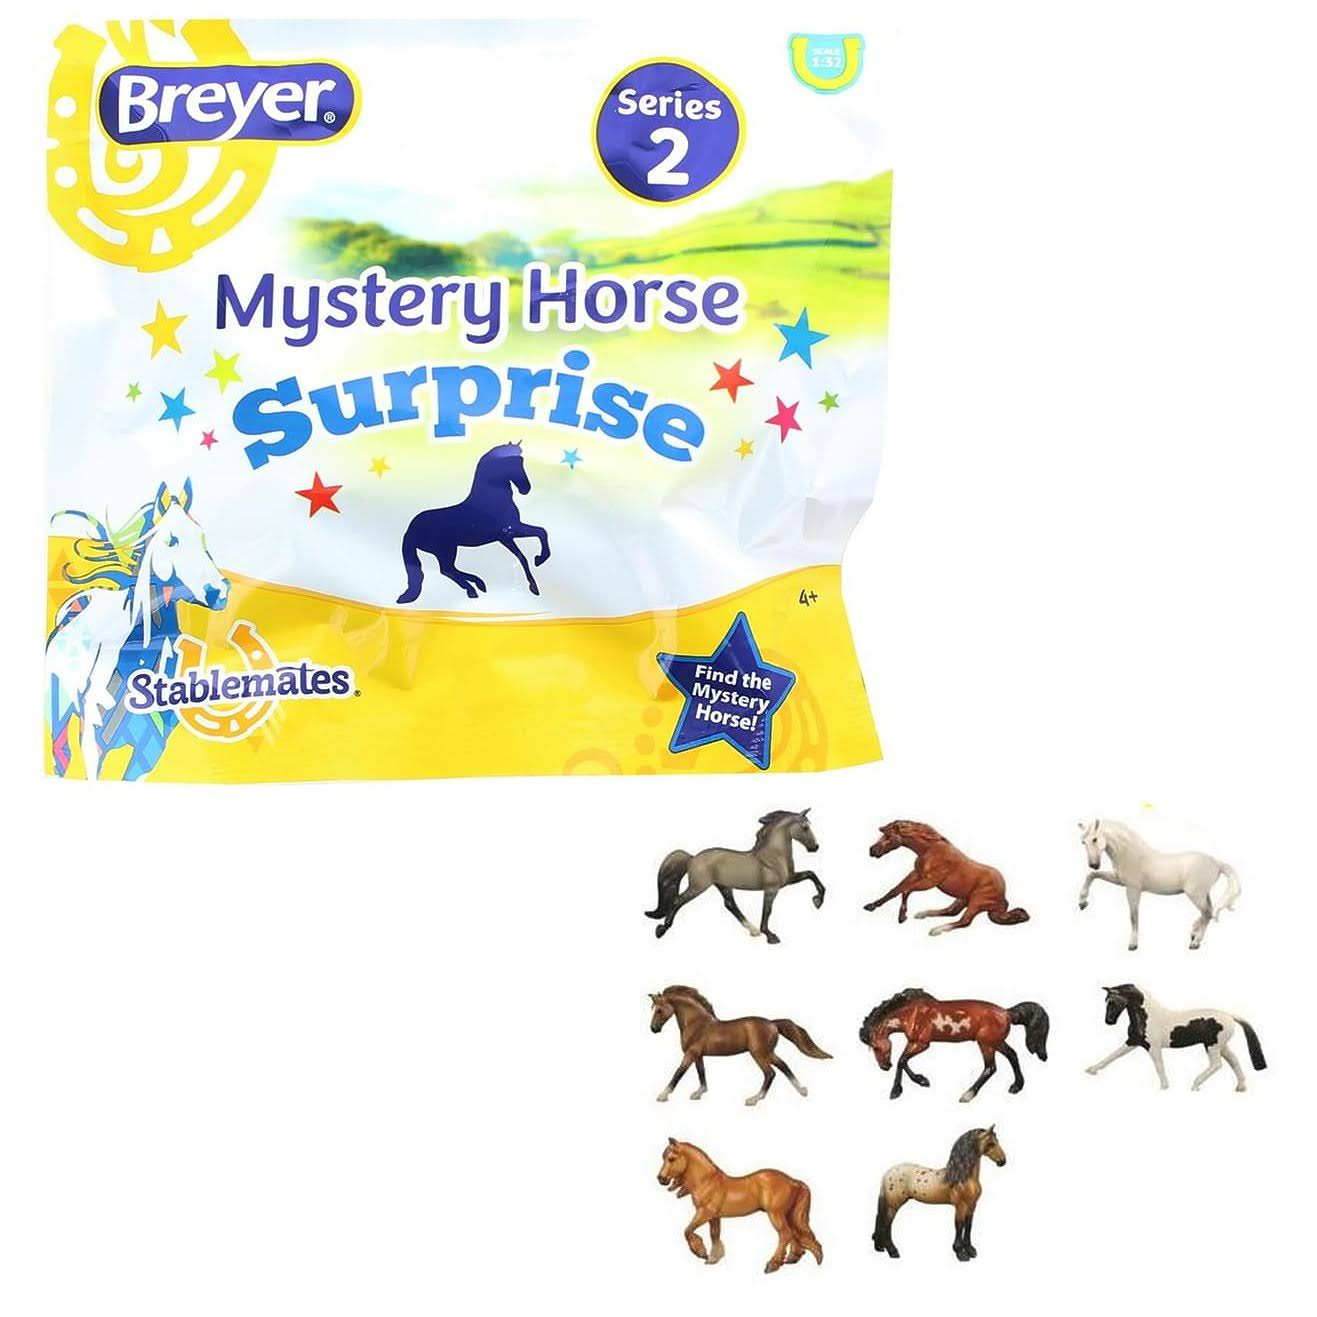 Breyer Stablemates Mystery Horse Surprise Series 2 - Single Pack